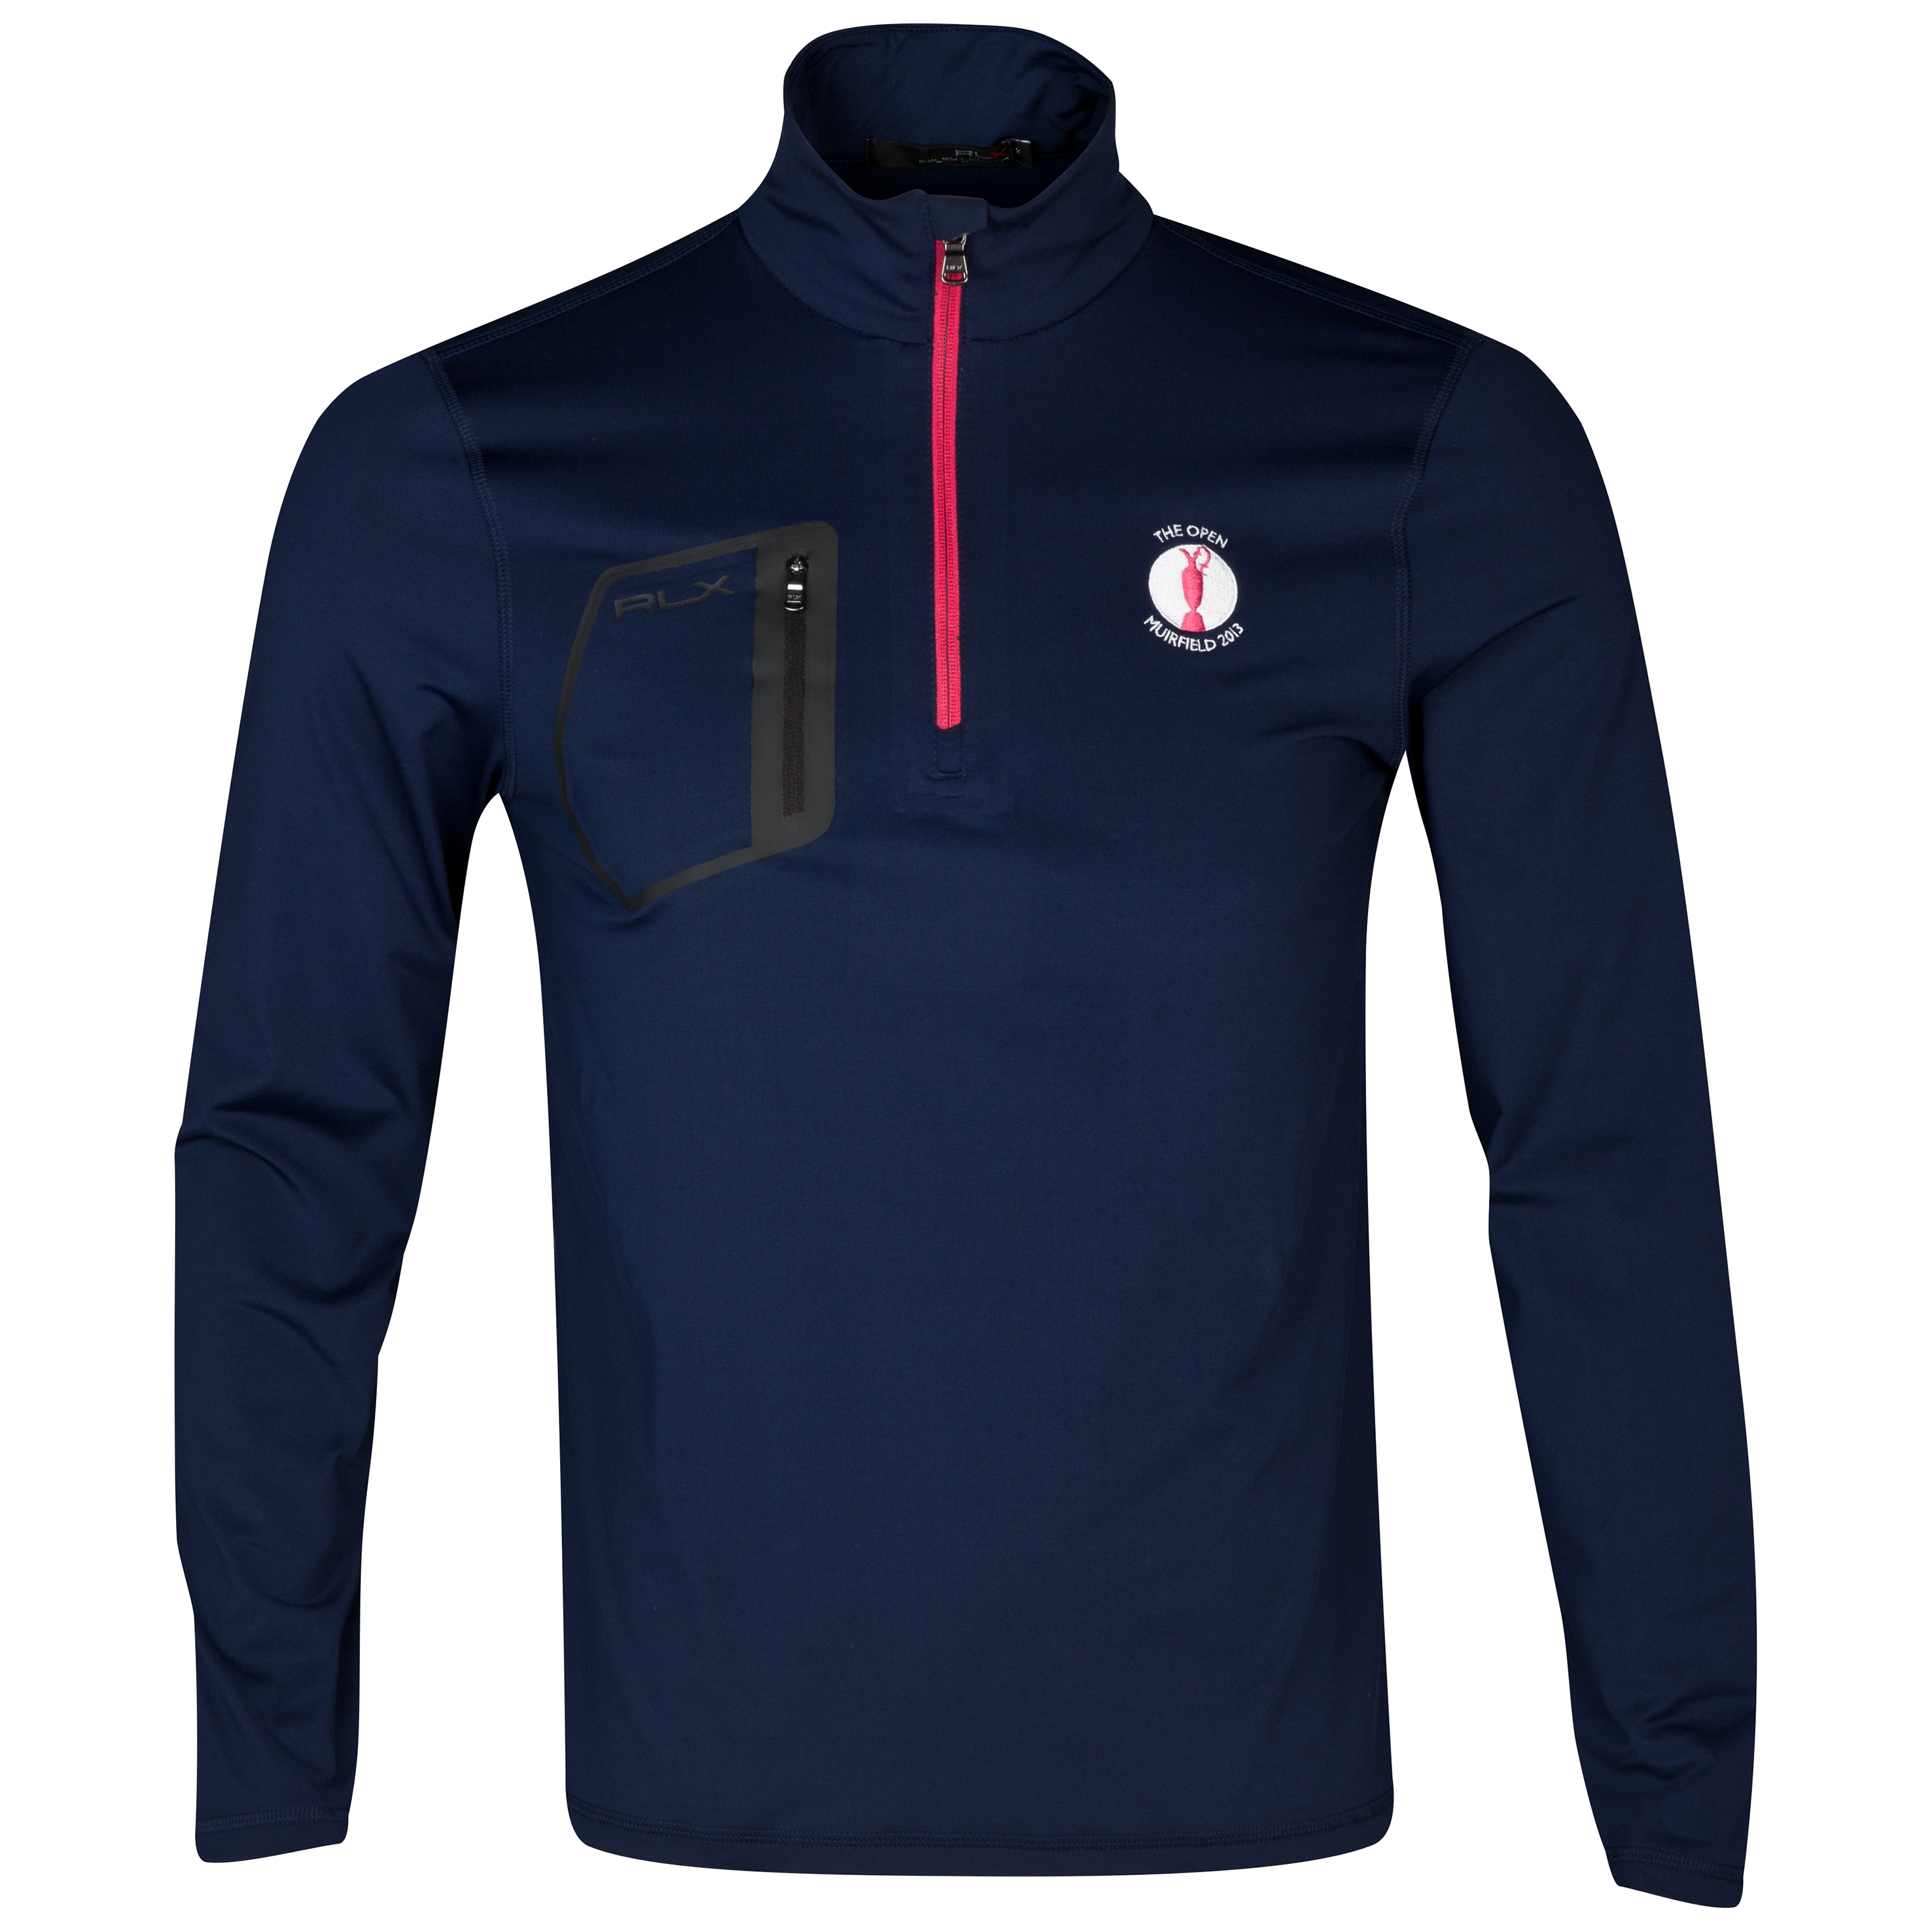 Open Golf The Open Championship 2013 Muirfield Ralph Lauren RLX Full Zip Long Sleeve Half Zip Knit Navy